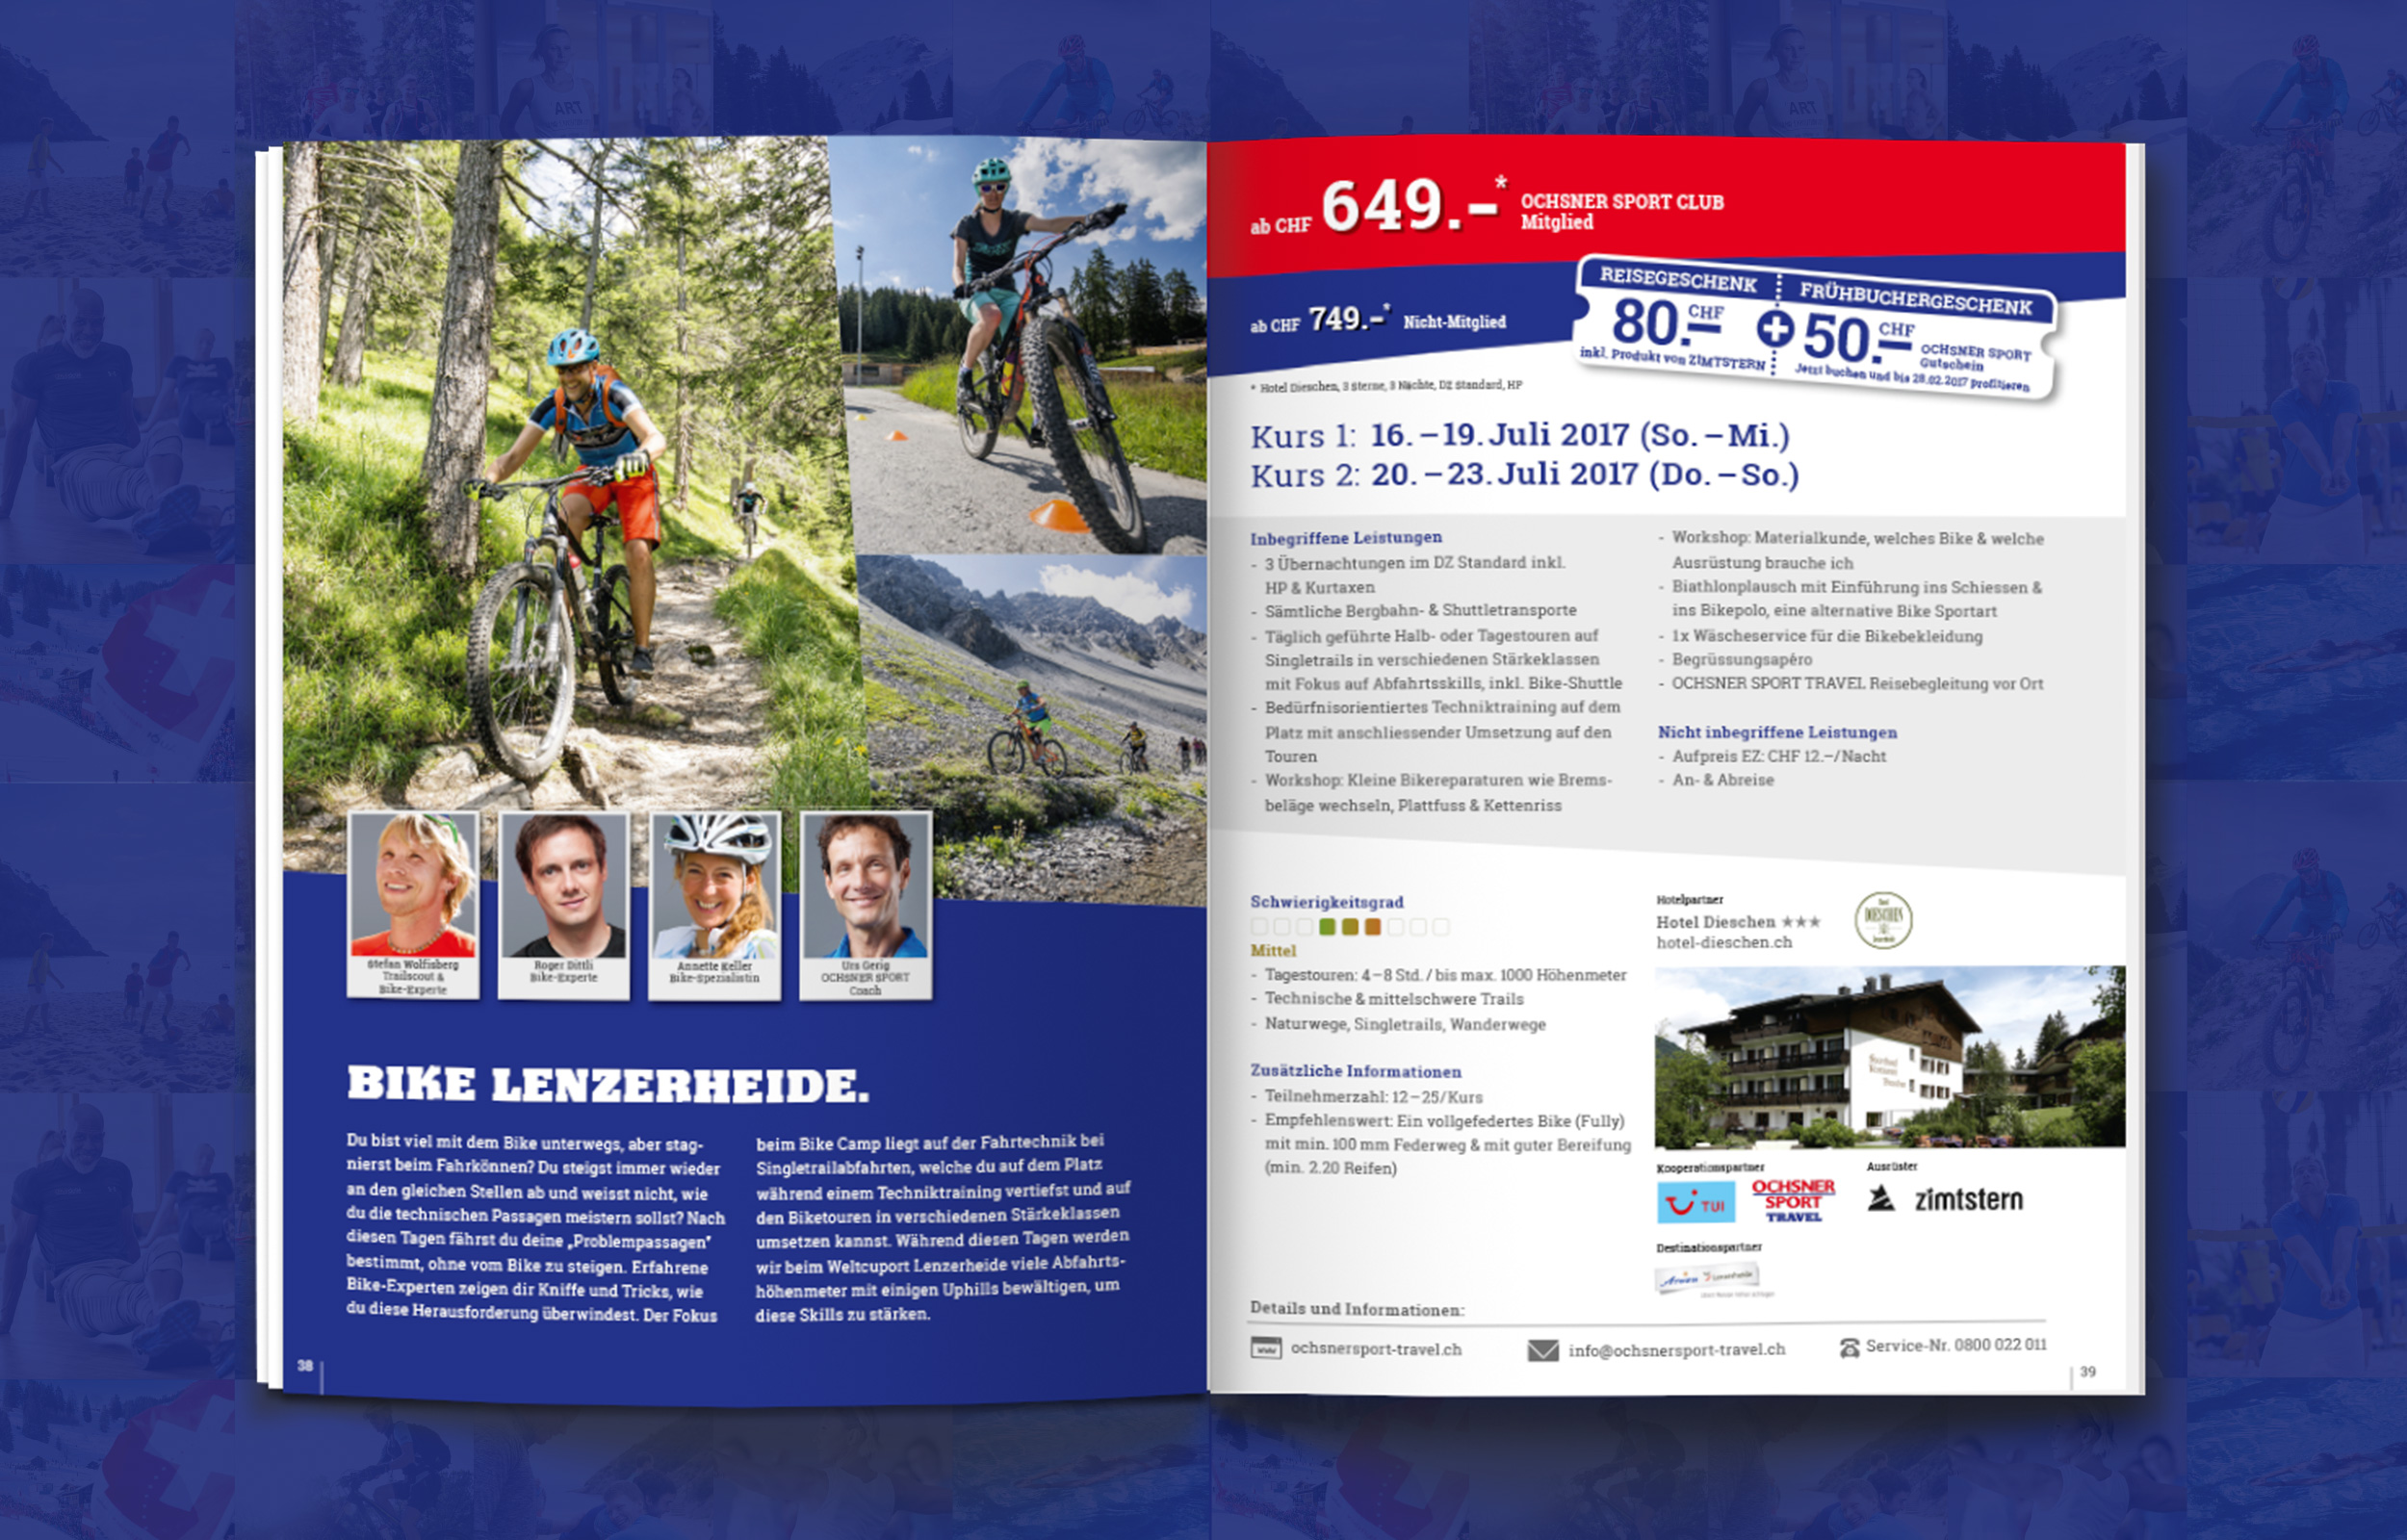 Ochsner_Travel_Katalog_2017_3